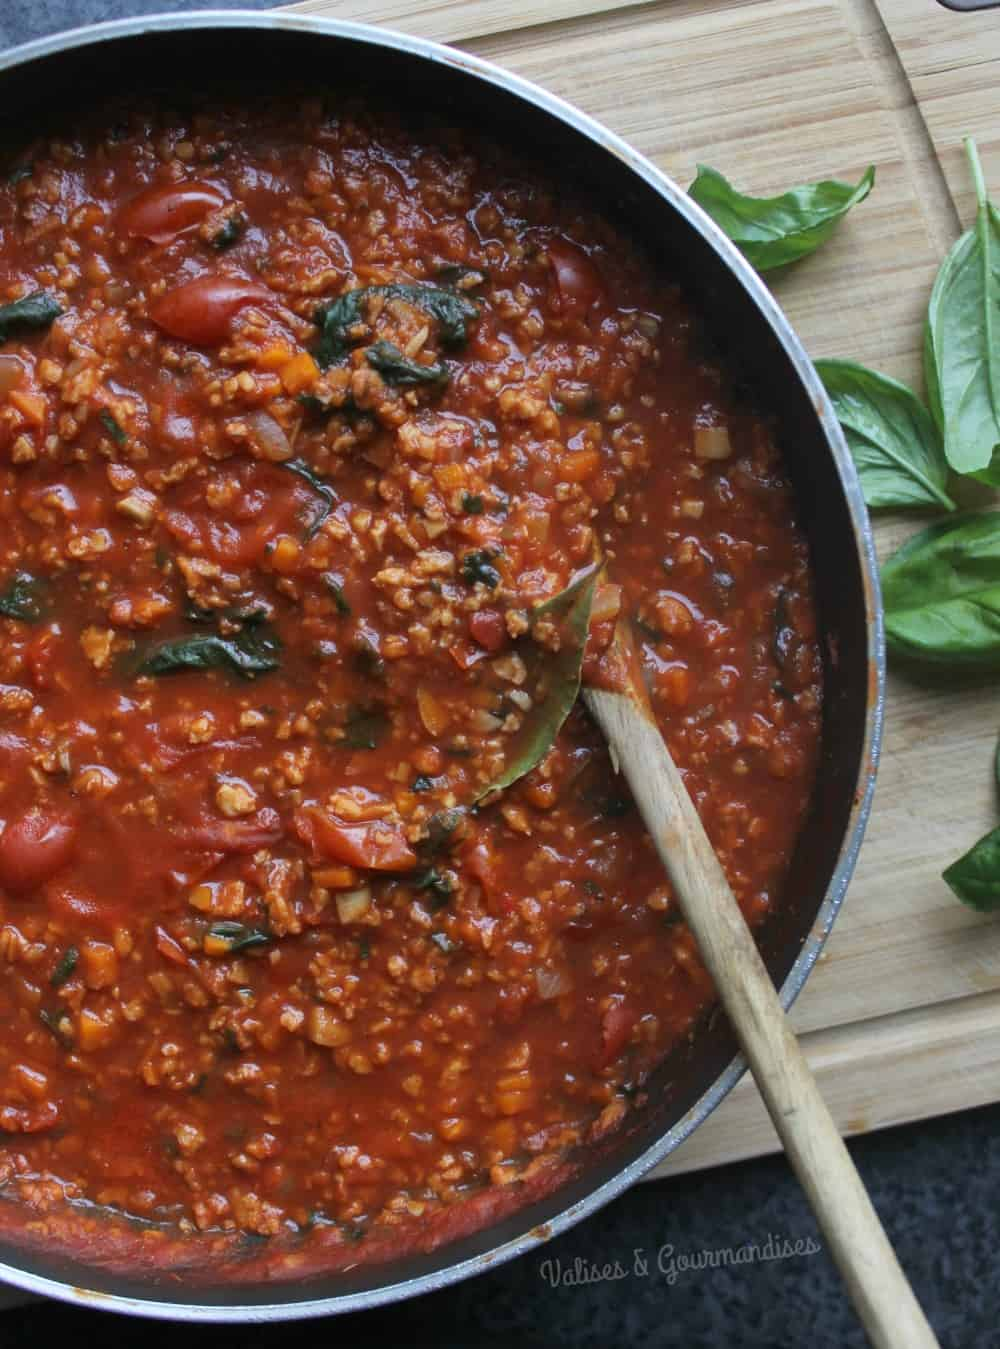 Delicious vegetarian bolognaise made with textured protein texture